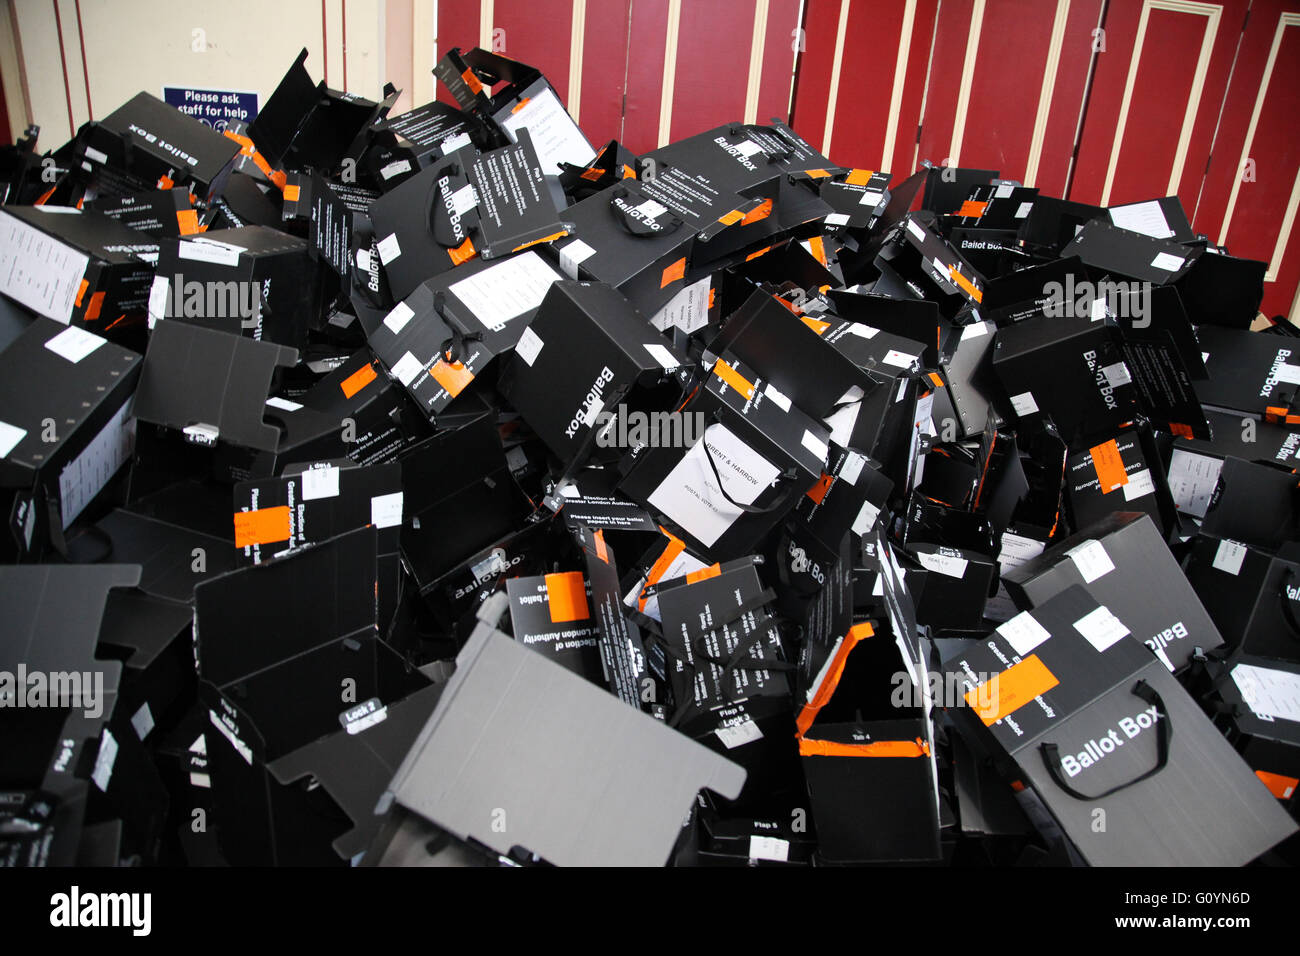 Alexandra Palace, London 6 May 2016 - Opened Ballot boxes  - The counting of the ballot papers for the Mayor of - Stock Image